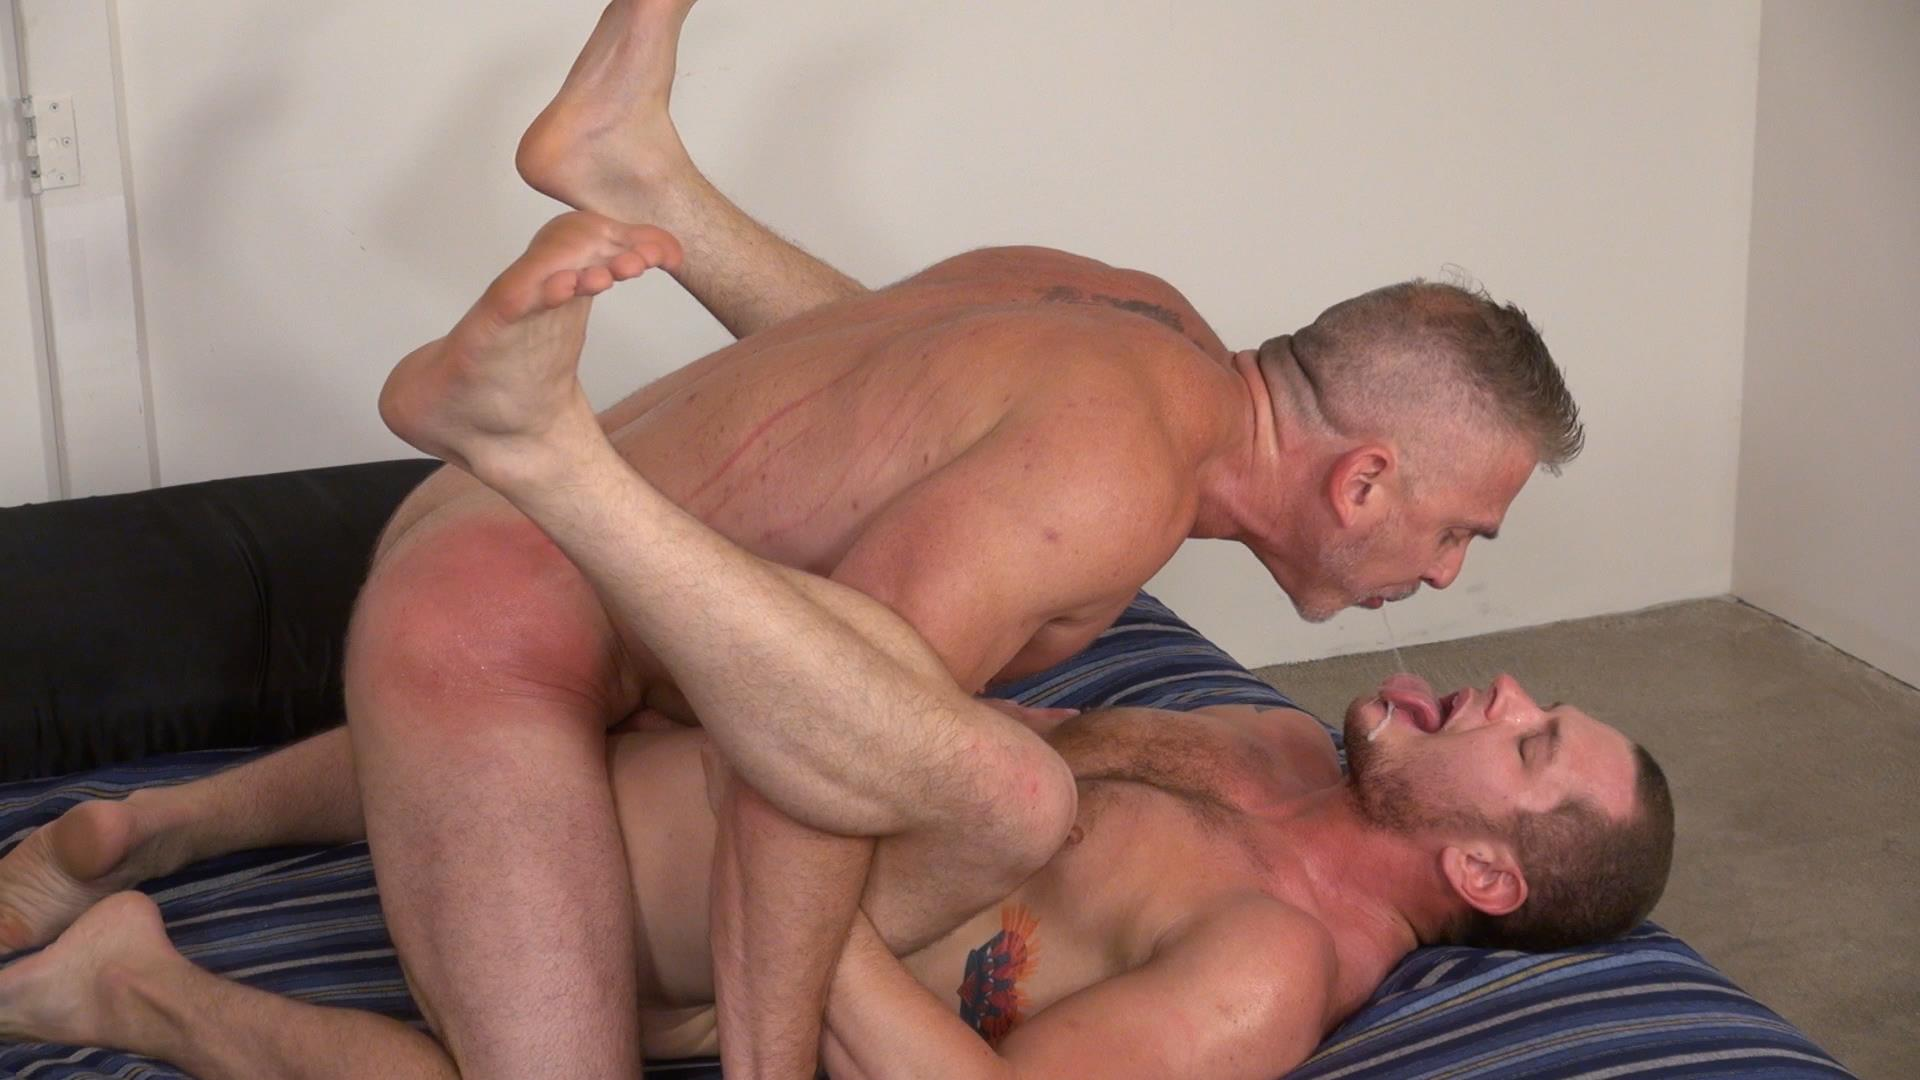 Raw and Rough Sam Dixon and Blue Bailey Daddy And Boy Flip Flip Bareback Fucking Amateur Gay Porn 06 Blue Bailey Flip Flop Barebacking With A Hung Daddy